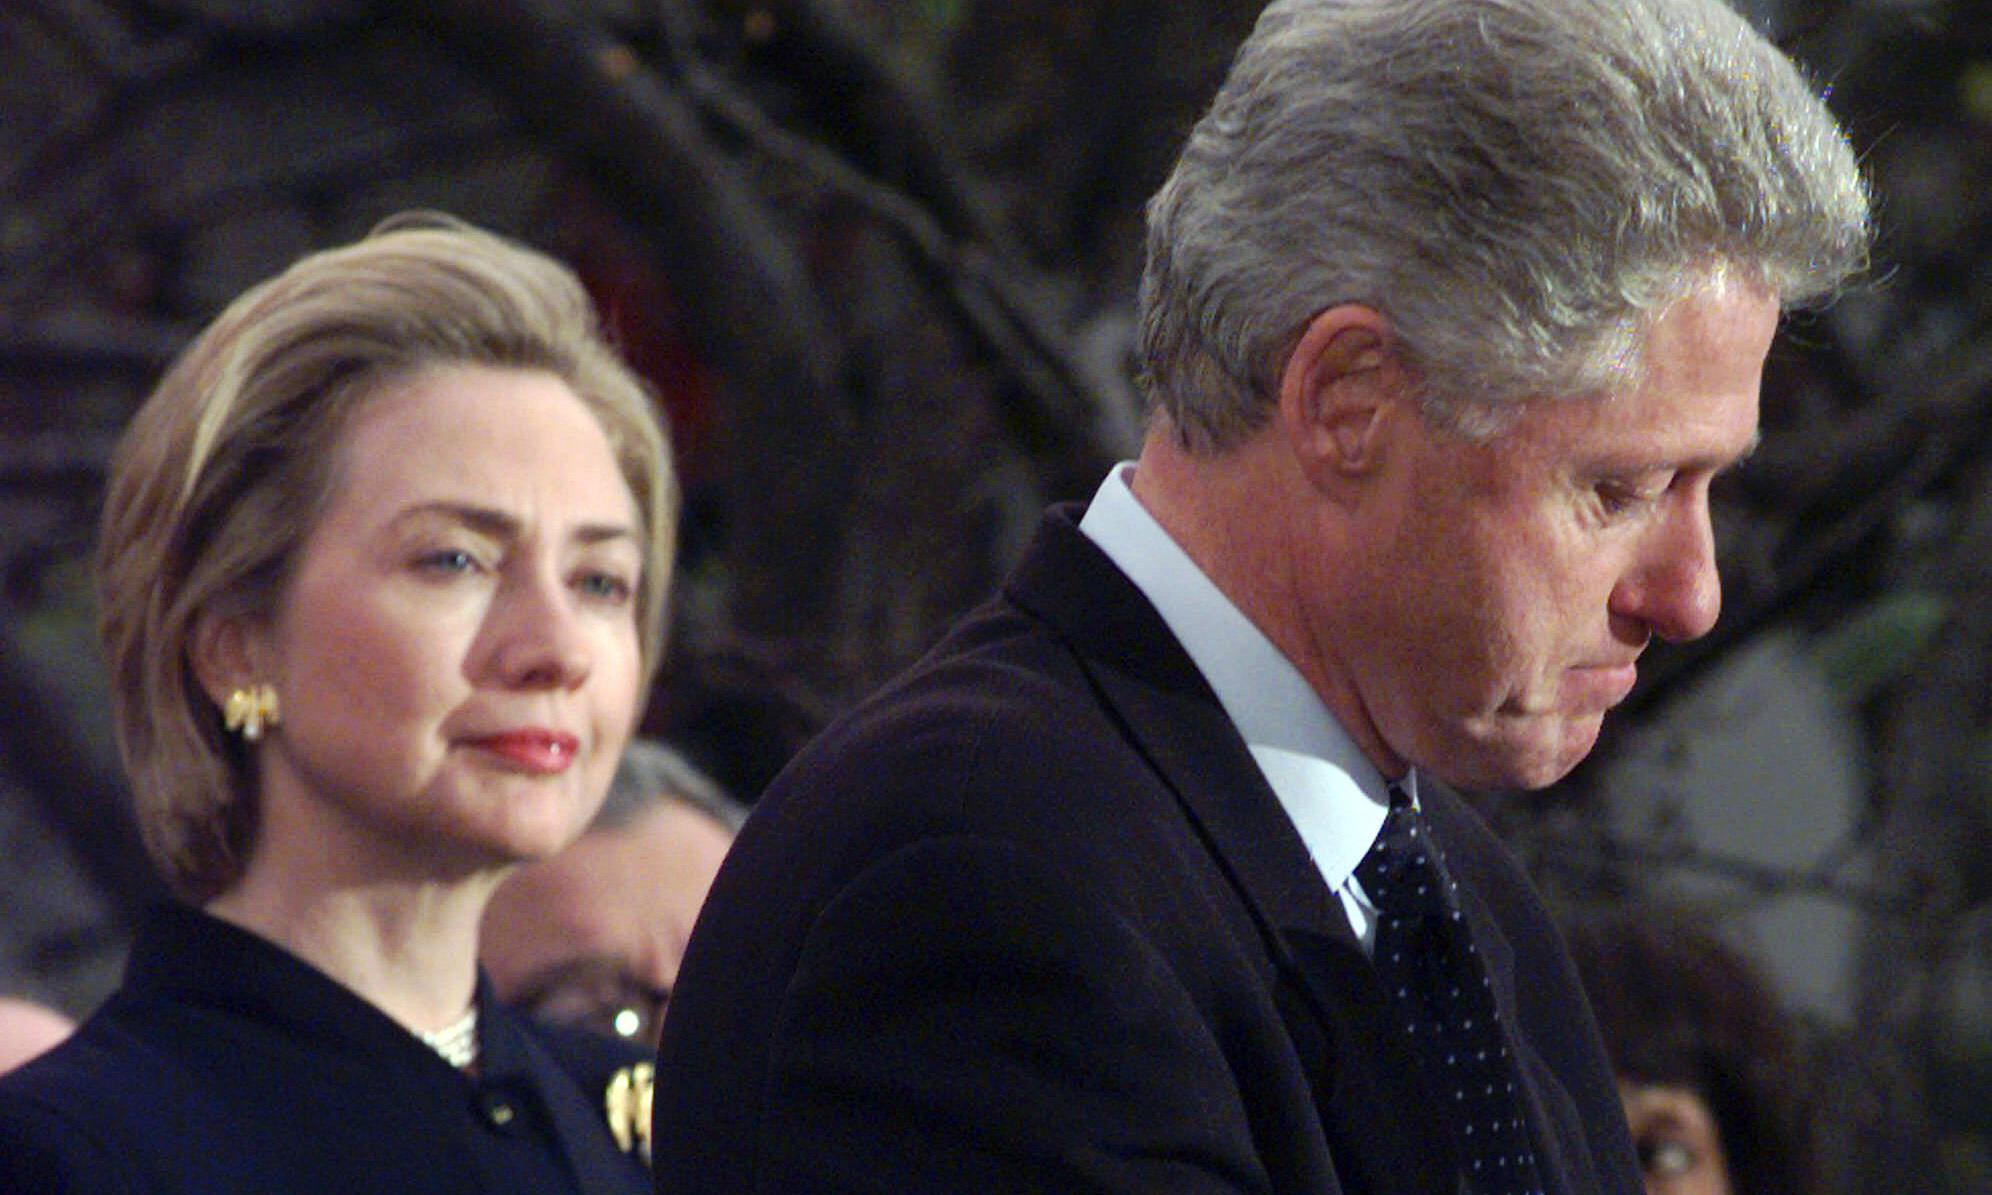 Hillary Clinton's view on the Lewinsky affair reveals a huge blind spot that cost her the presidency